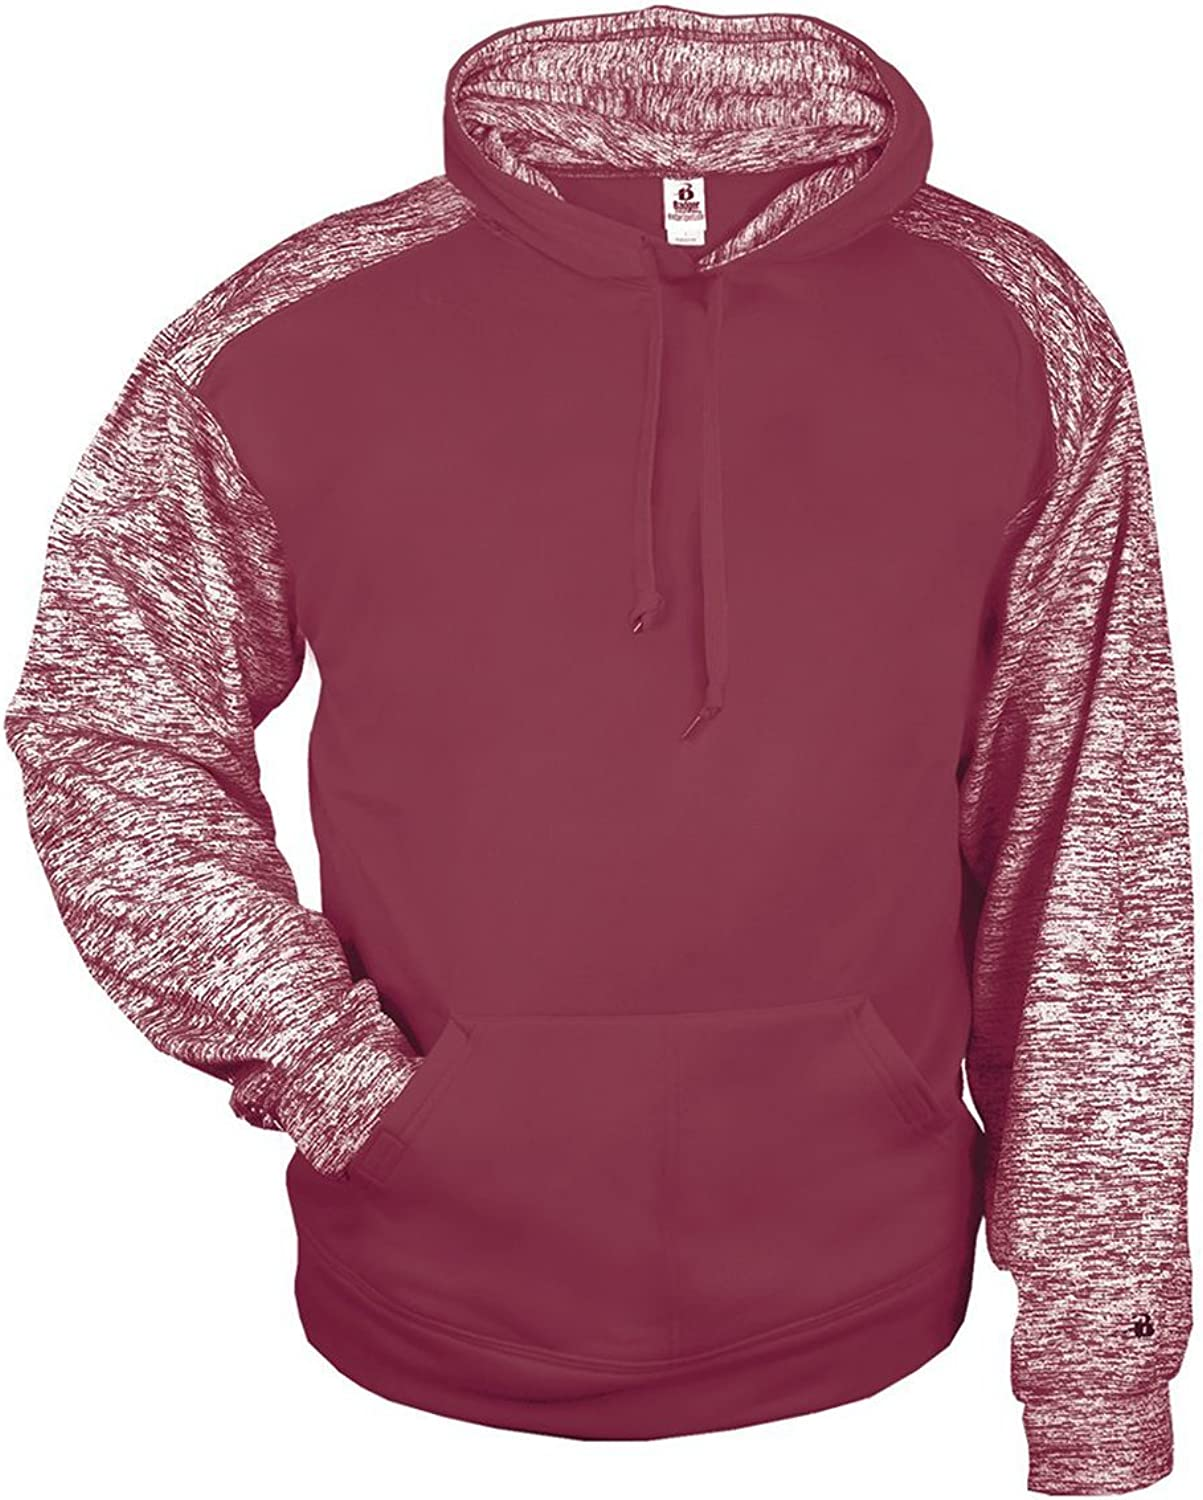 1e5ecd38d Badger Badger Badger mens Blend Sport Hooded Sweatshirt (1462) 2f8baf